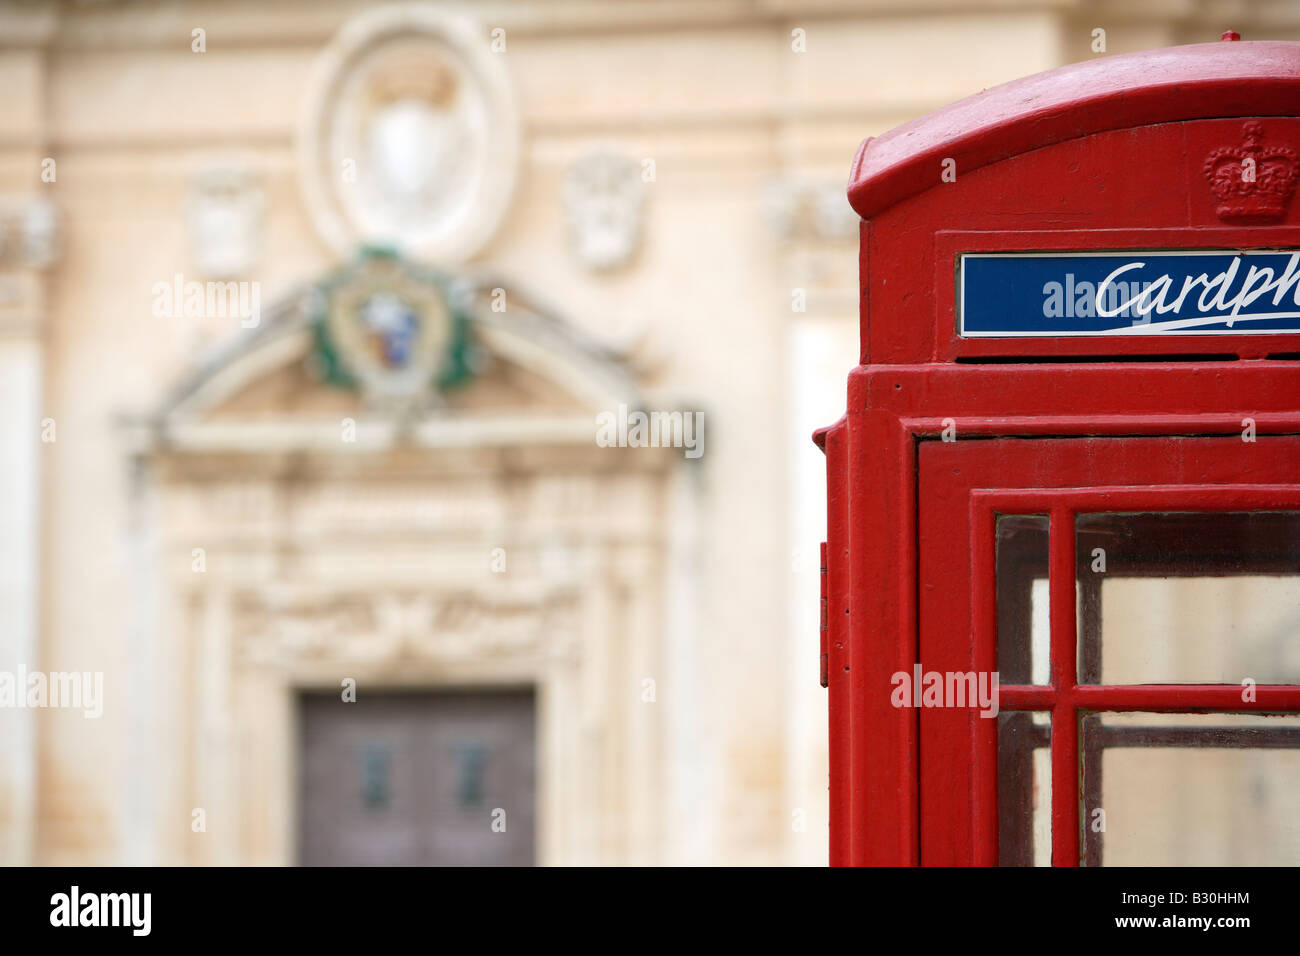 Mdina Cathedral and Red Telephone Box, Malta - Stock Image